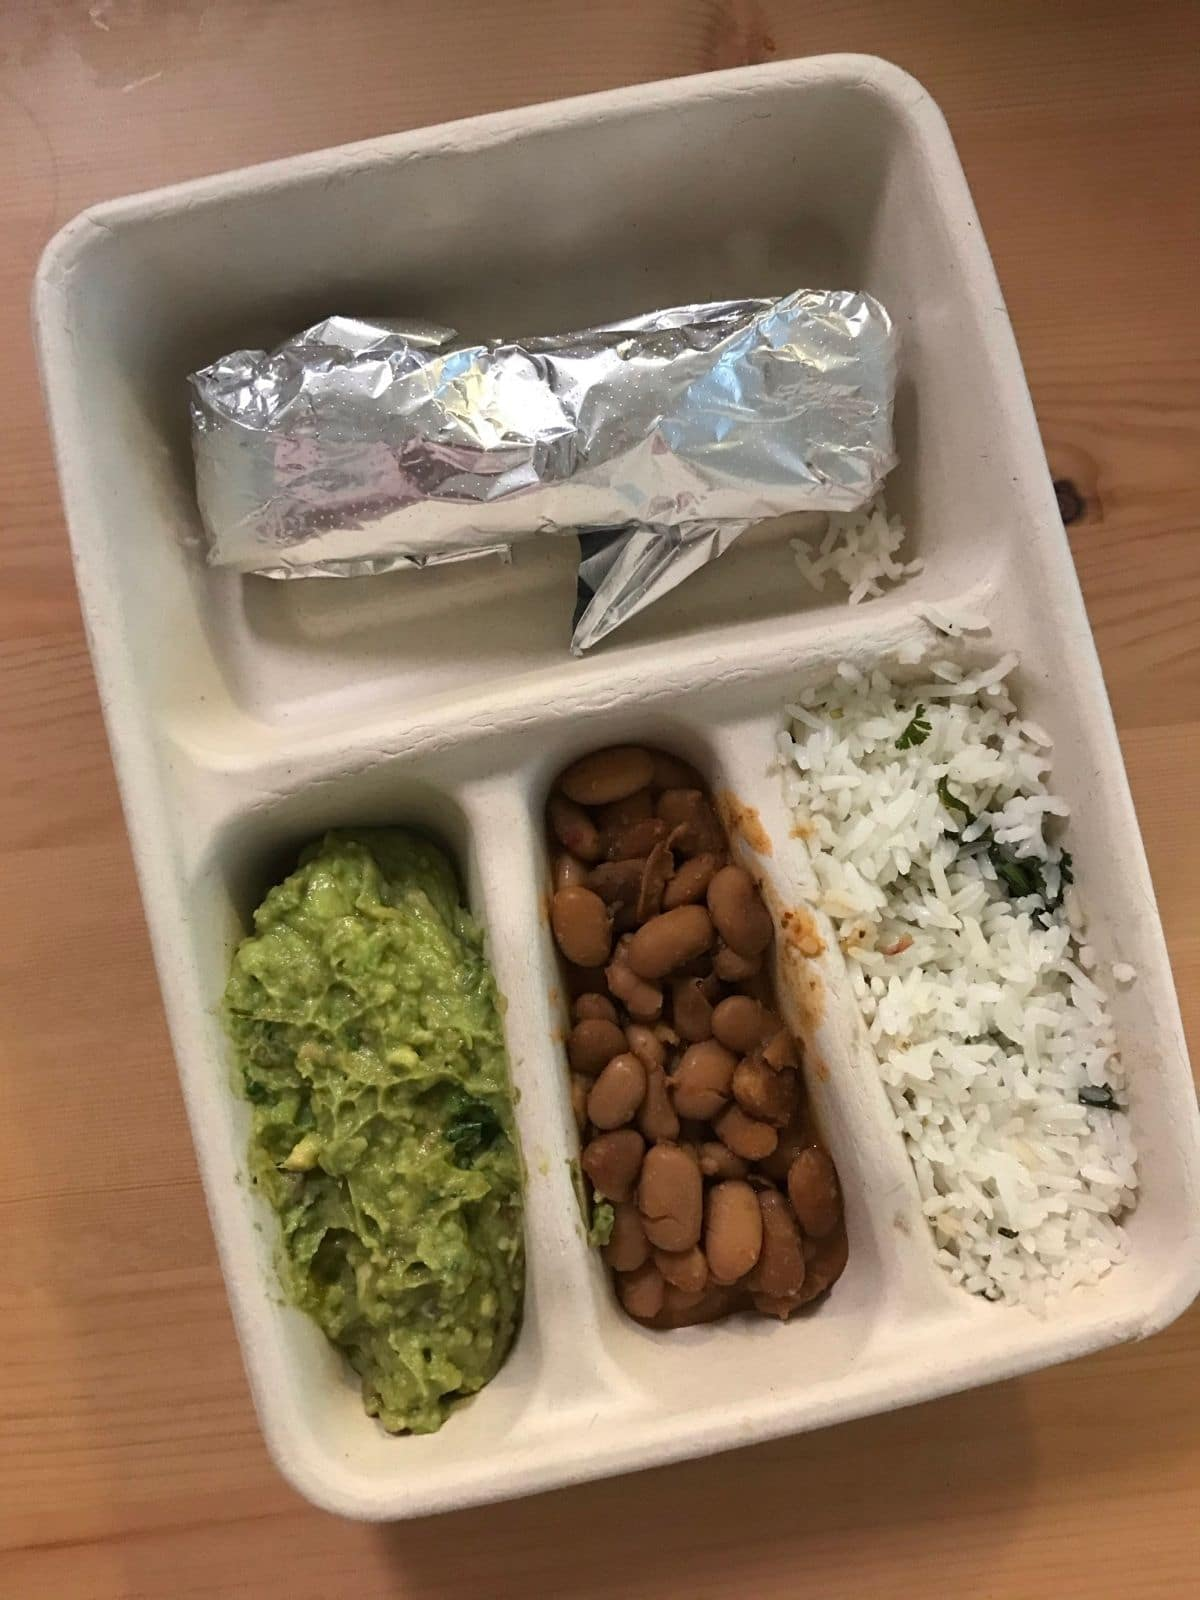 vegan kids meal from chipotle with a tortilla in foil, pinto beans, white rice, and guacamole on a wood table